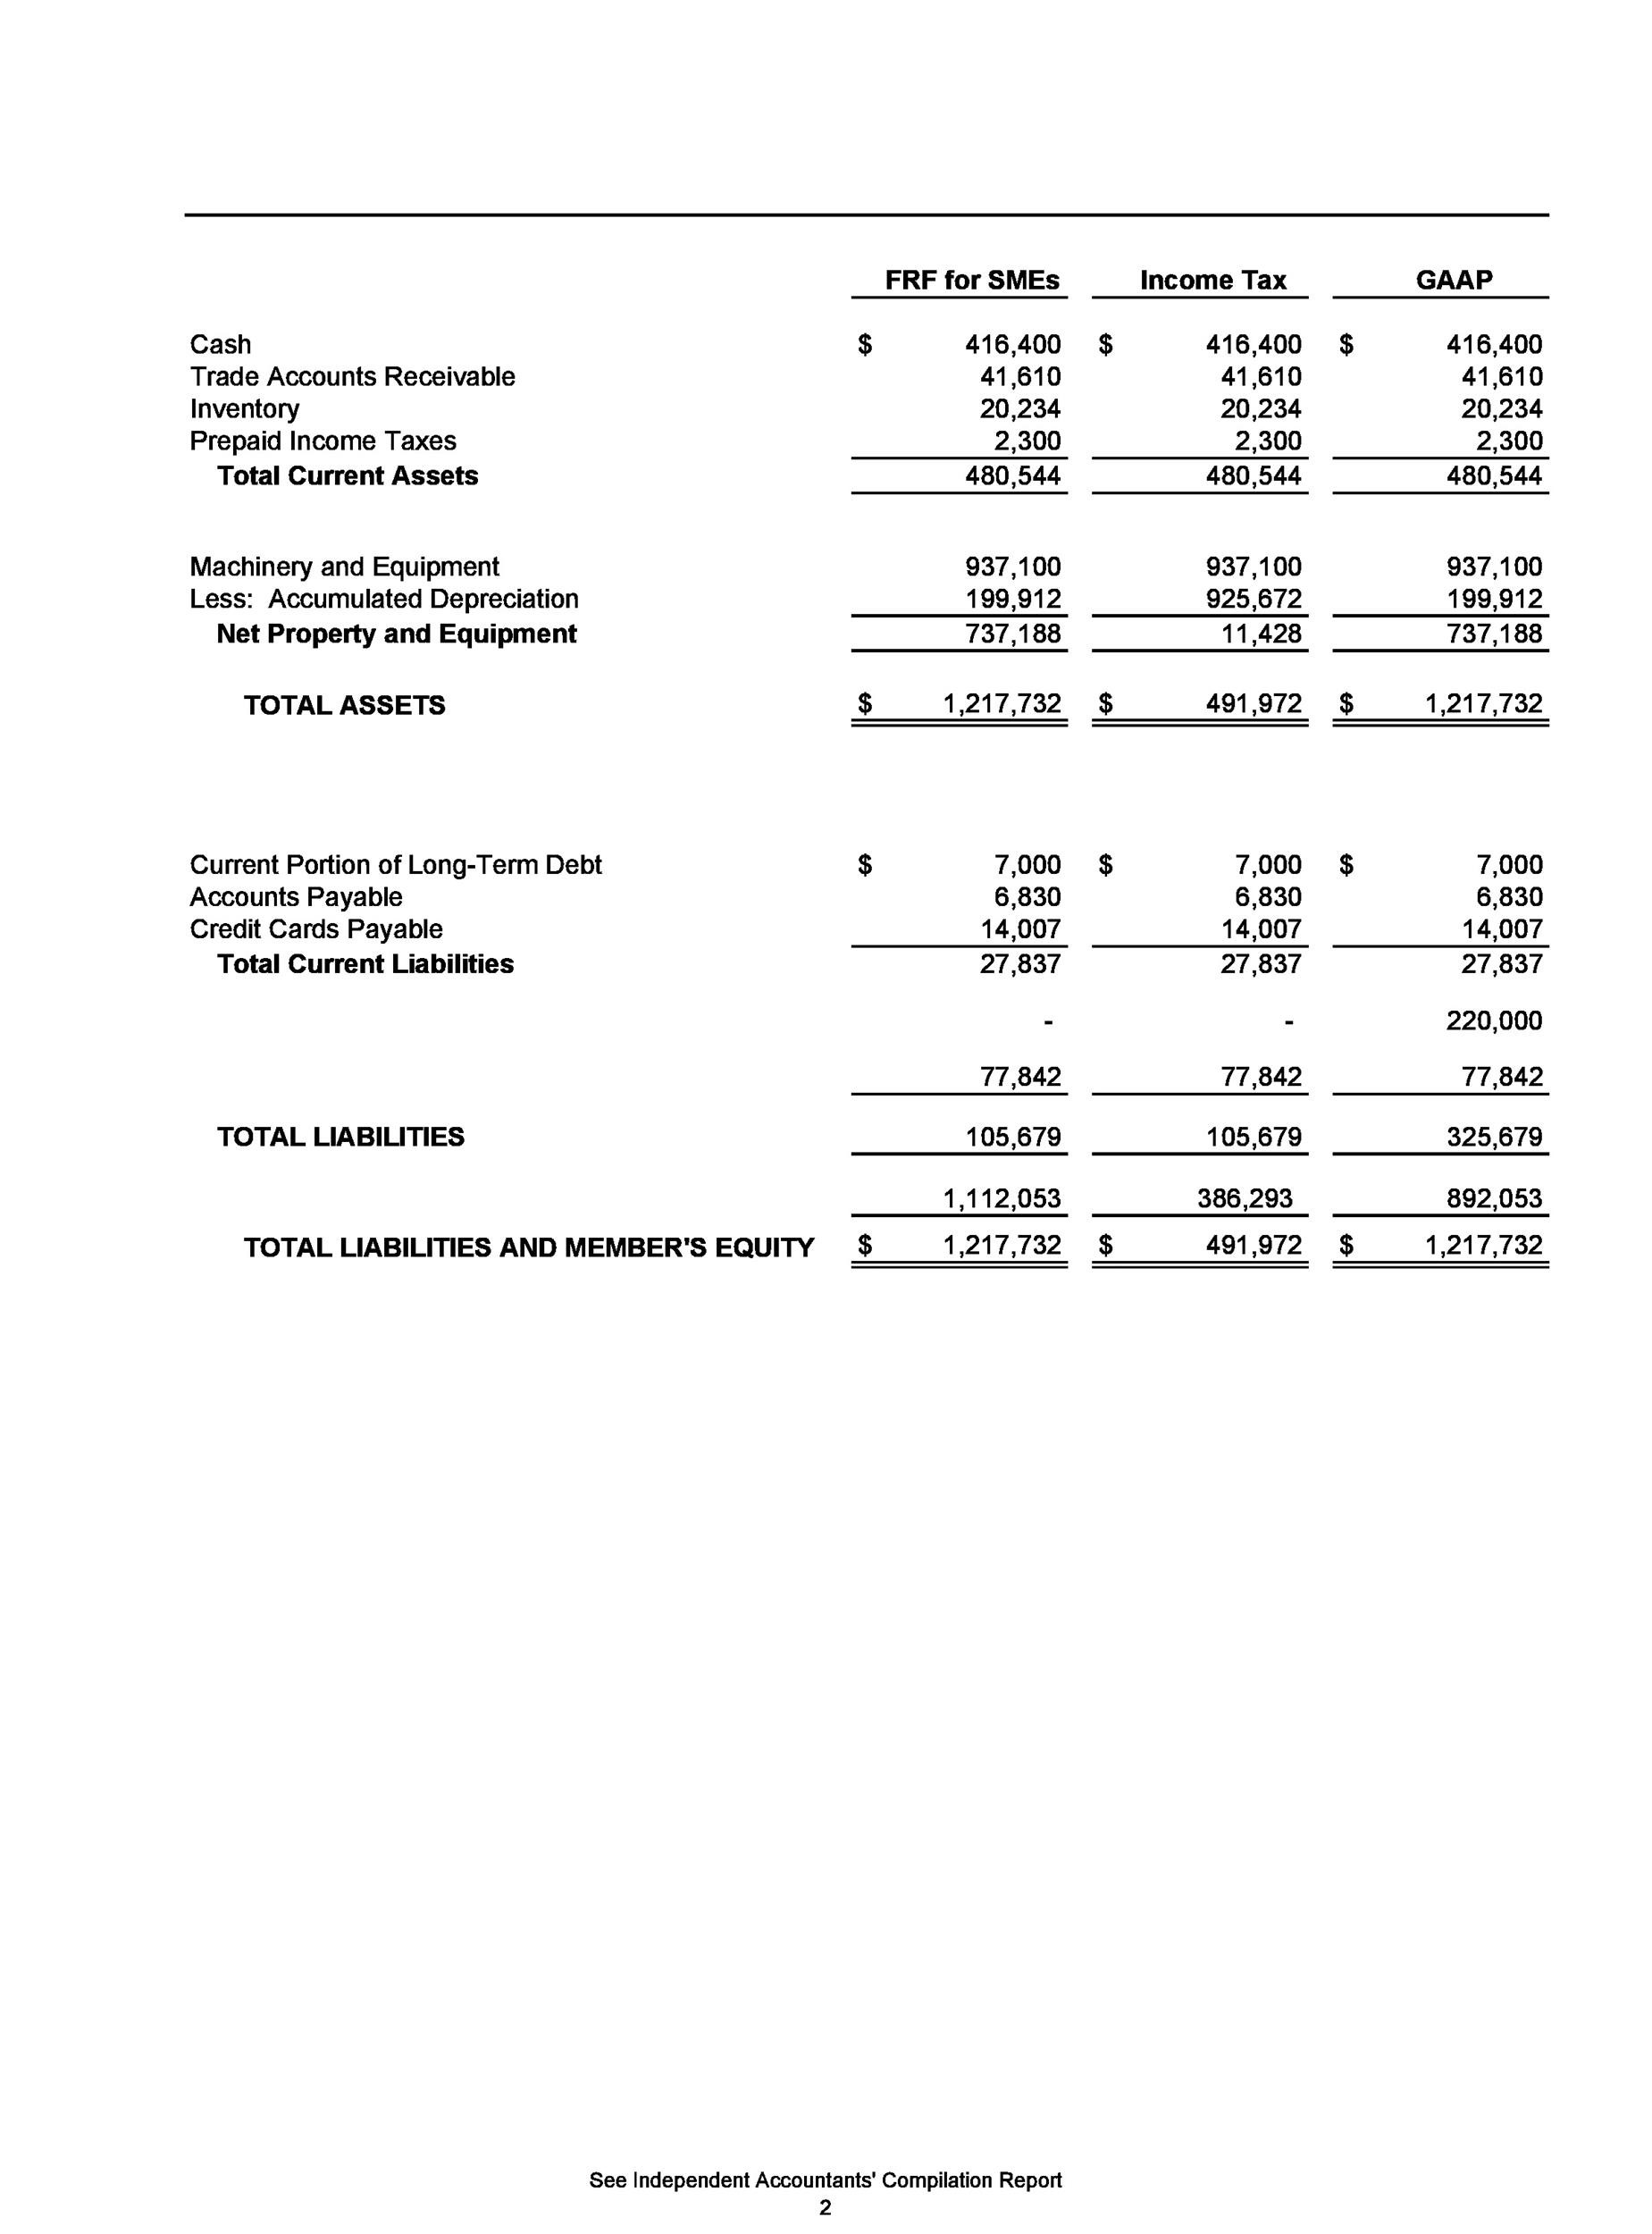 Free cash flow statement 14